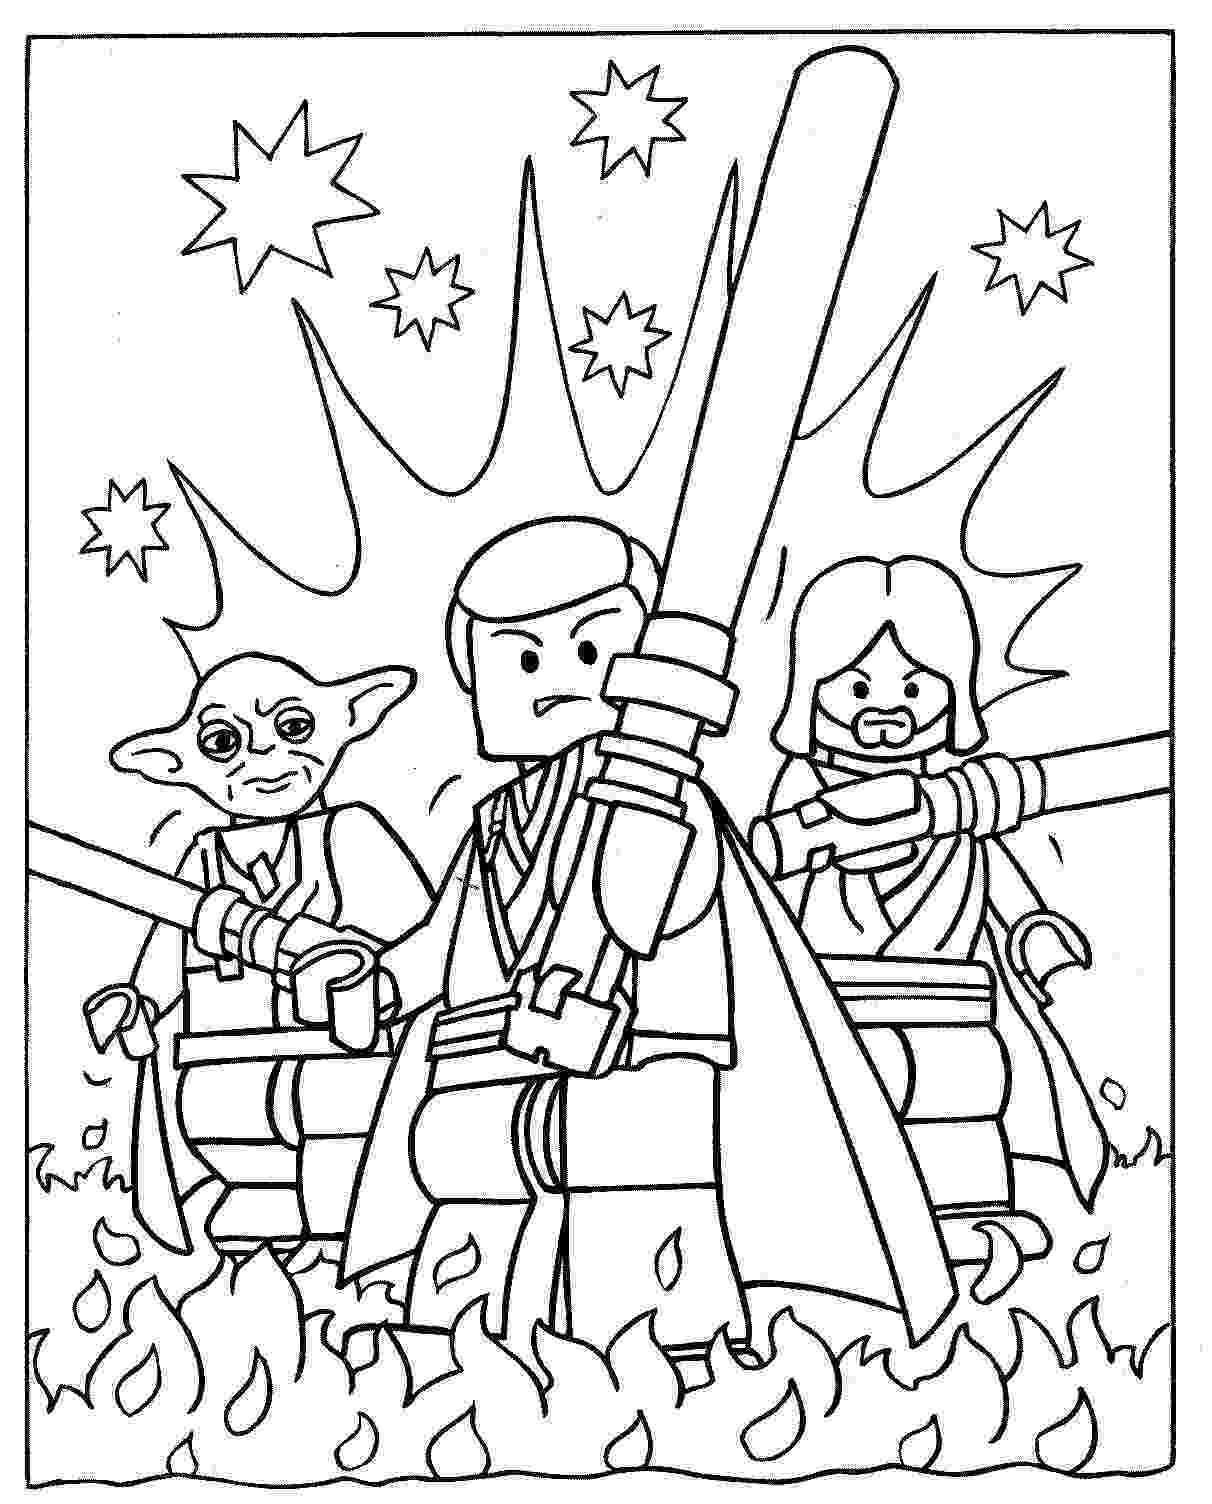 free printable star wars coloring pages star wars free printable coloring pages for adults kids free pages star coloring wars printable